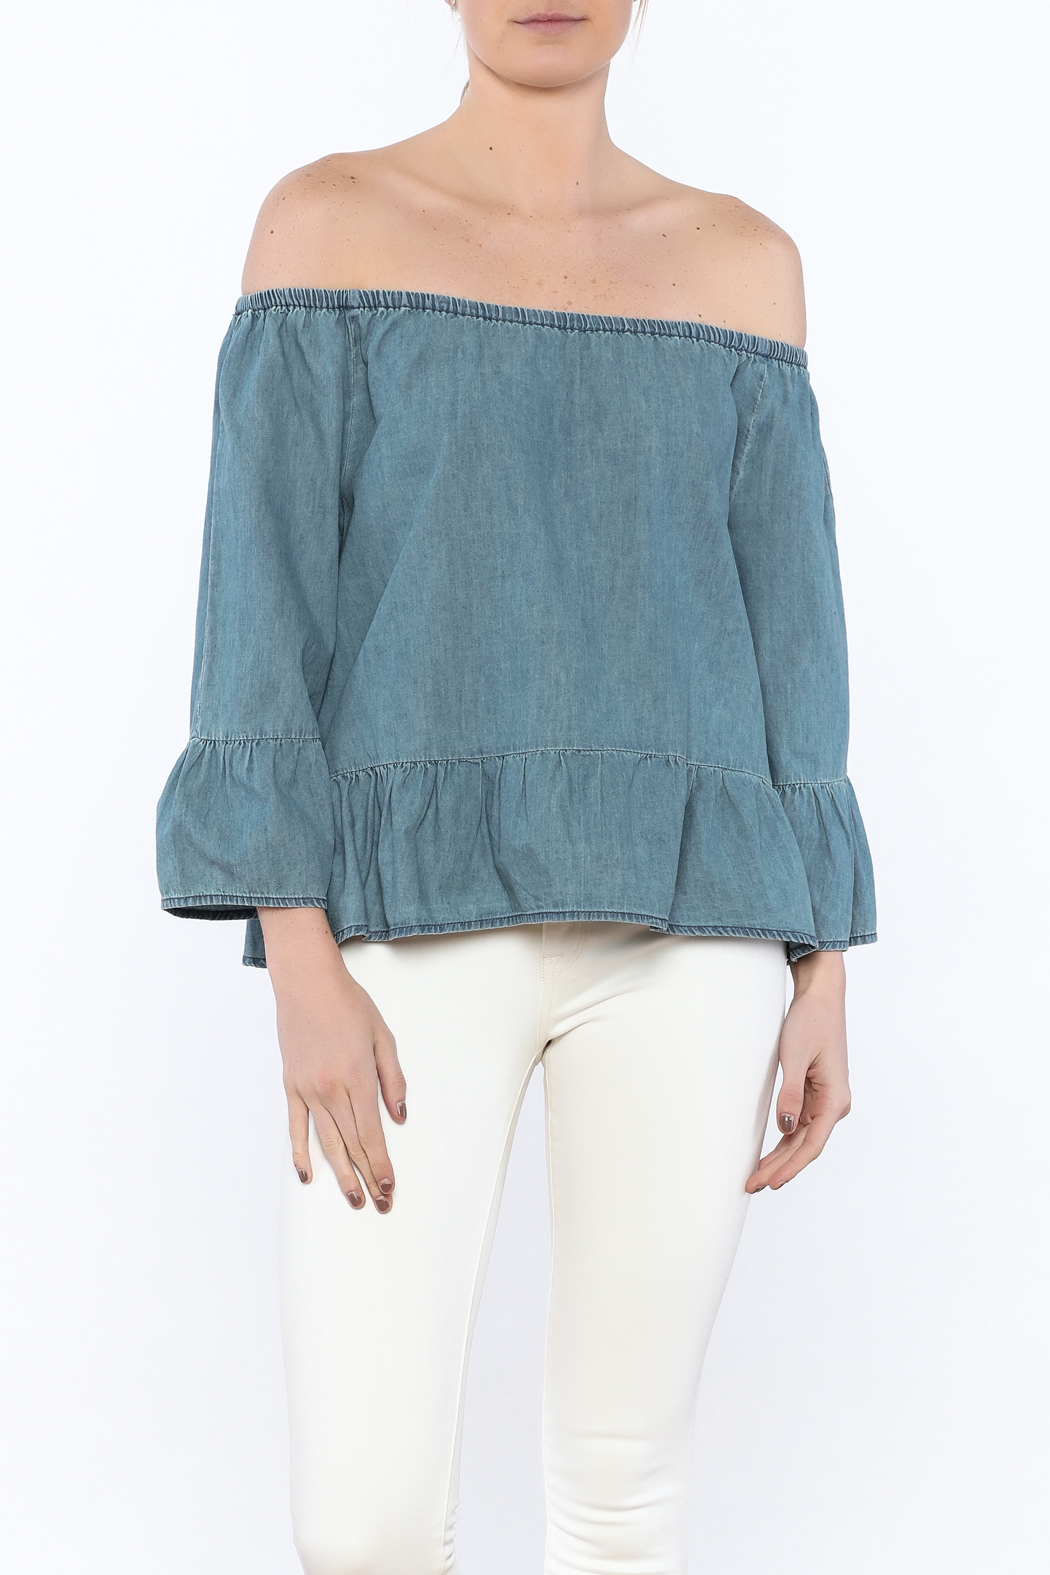 Cupcakes & Cashmere Off-Shoulder Chambray Blouse - Main Image